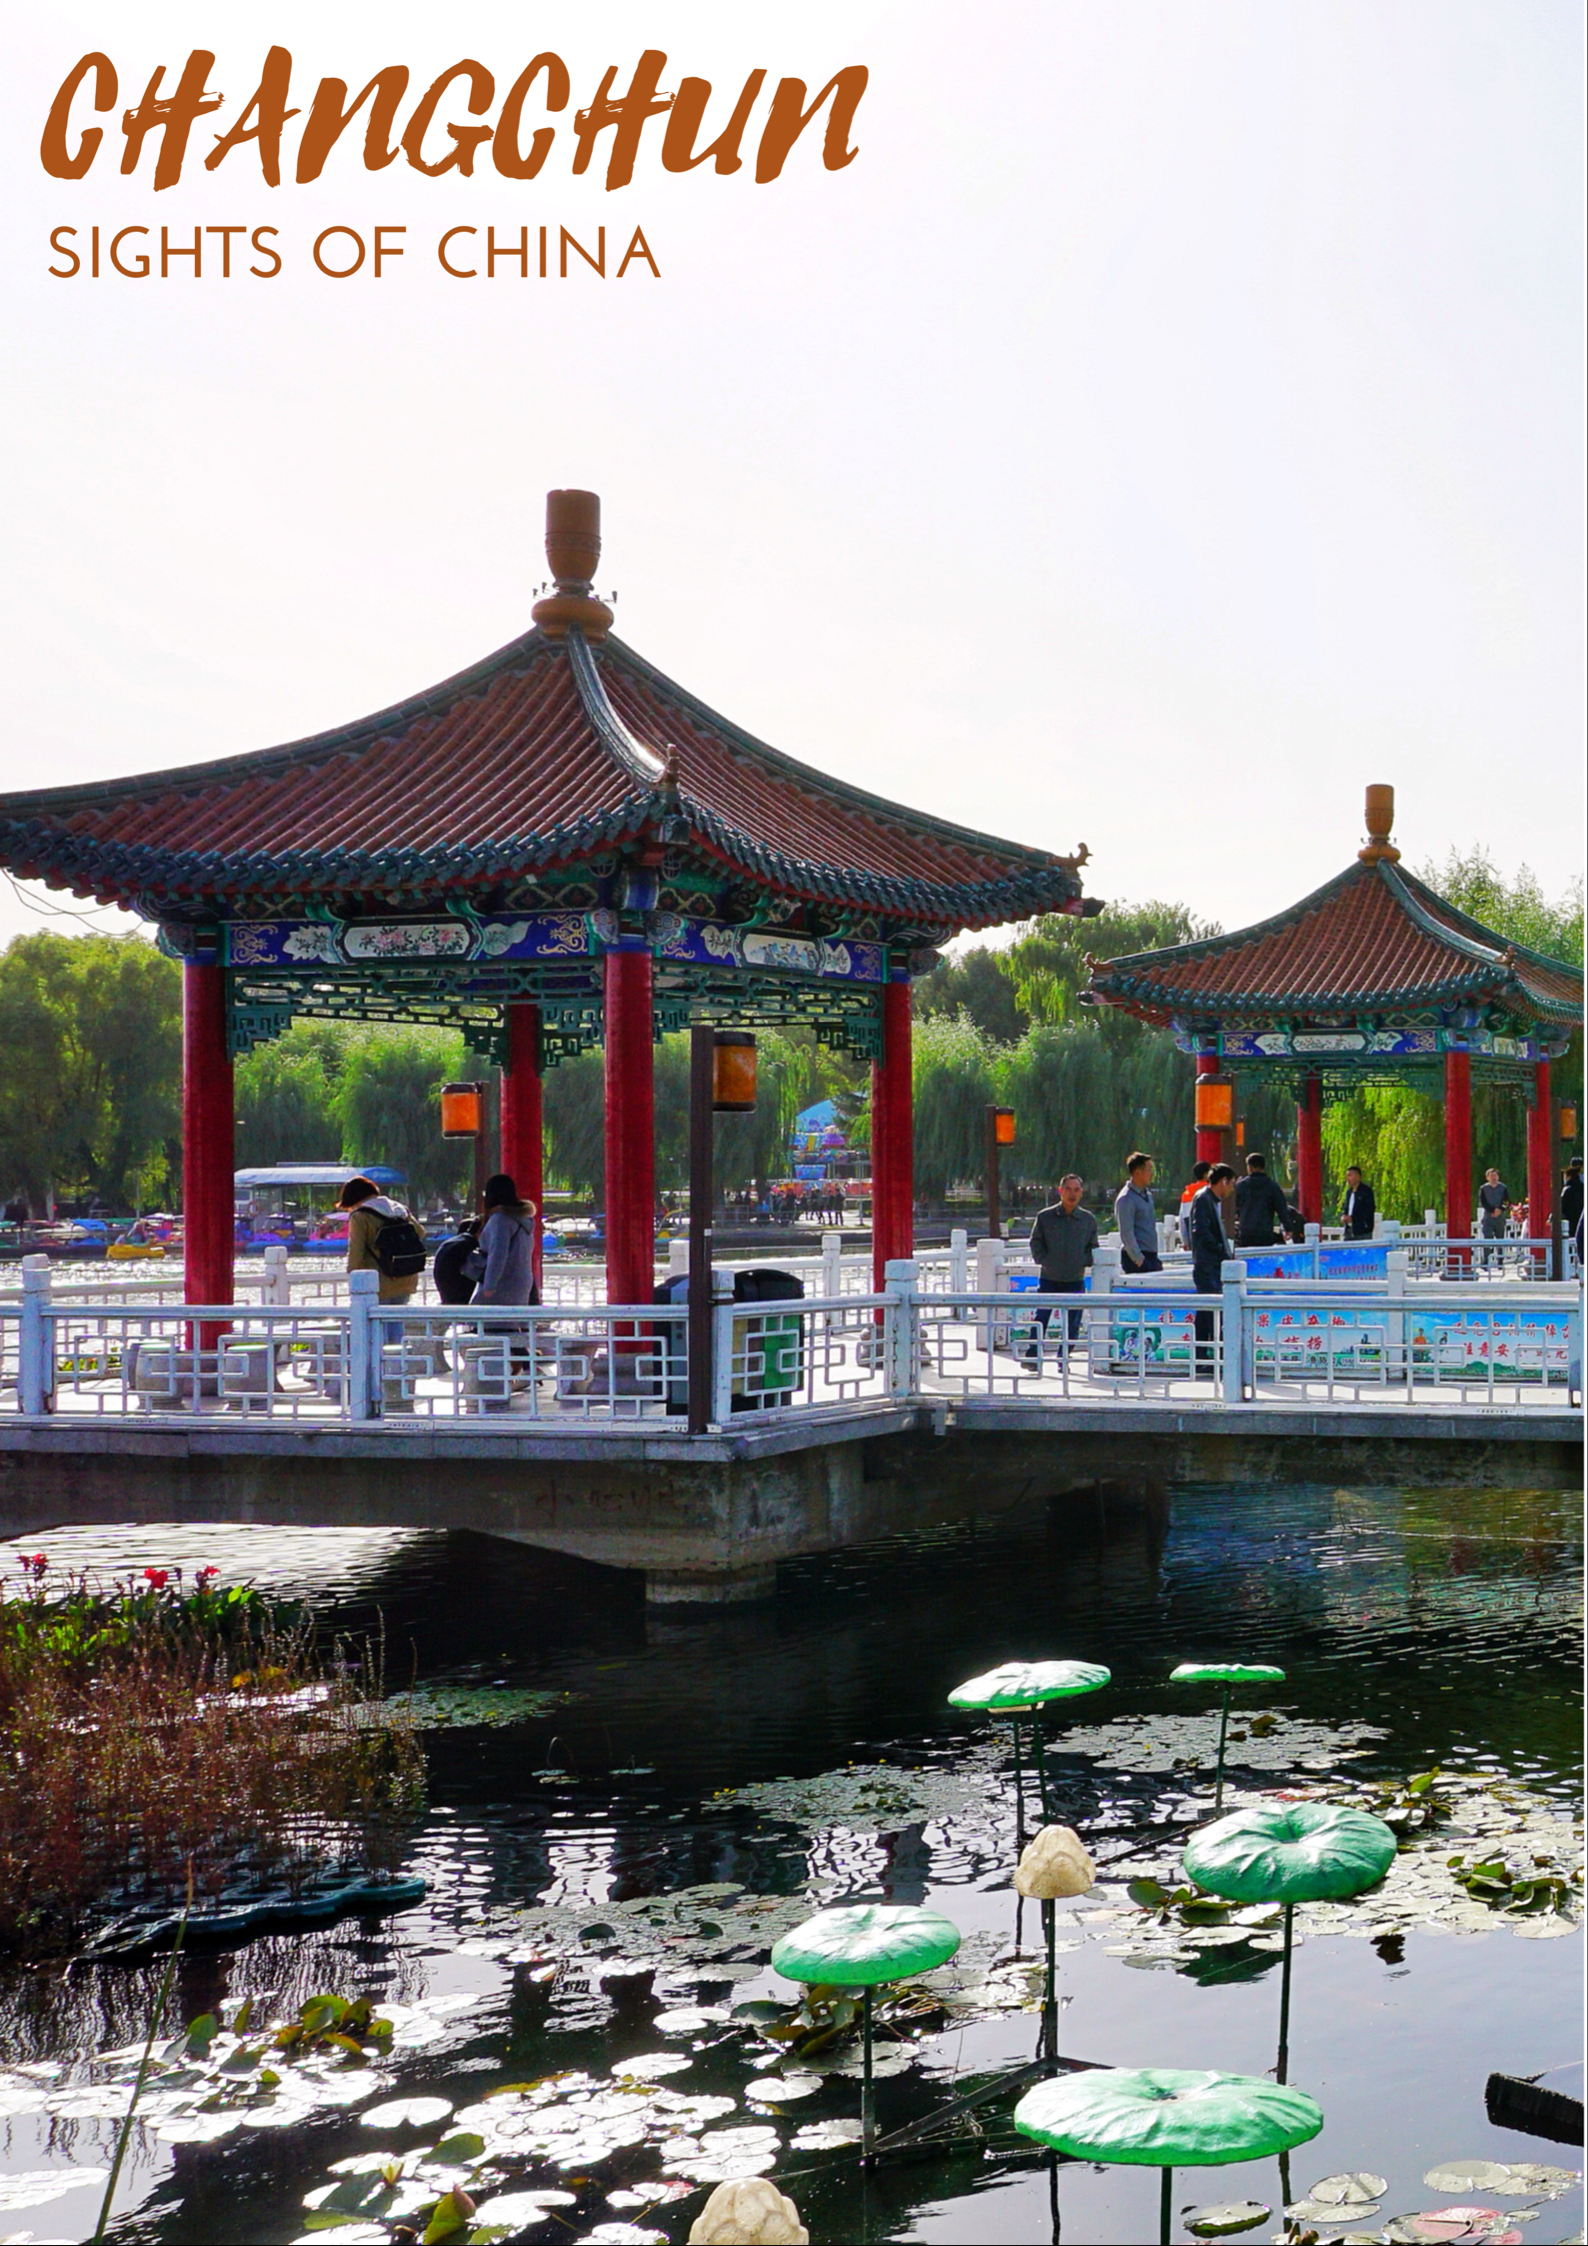 Changchun is the beautiful capital of the Jilin province